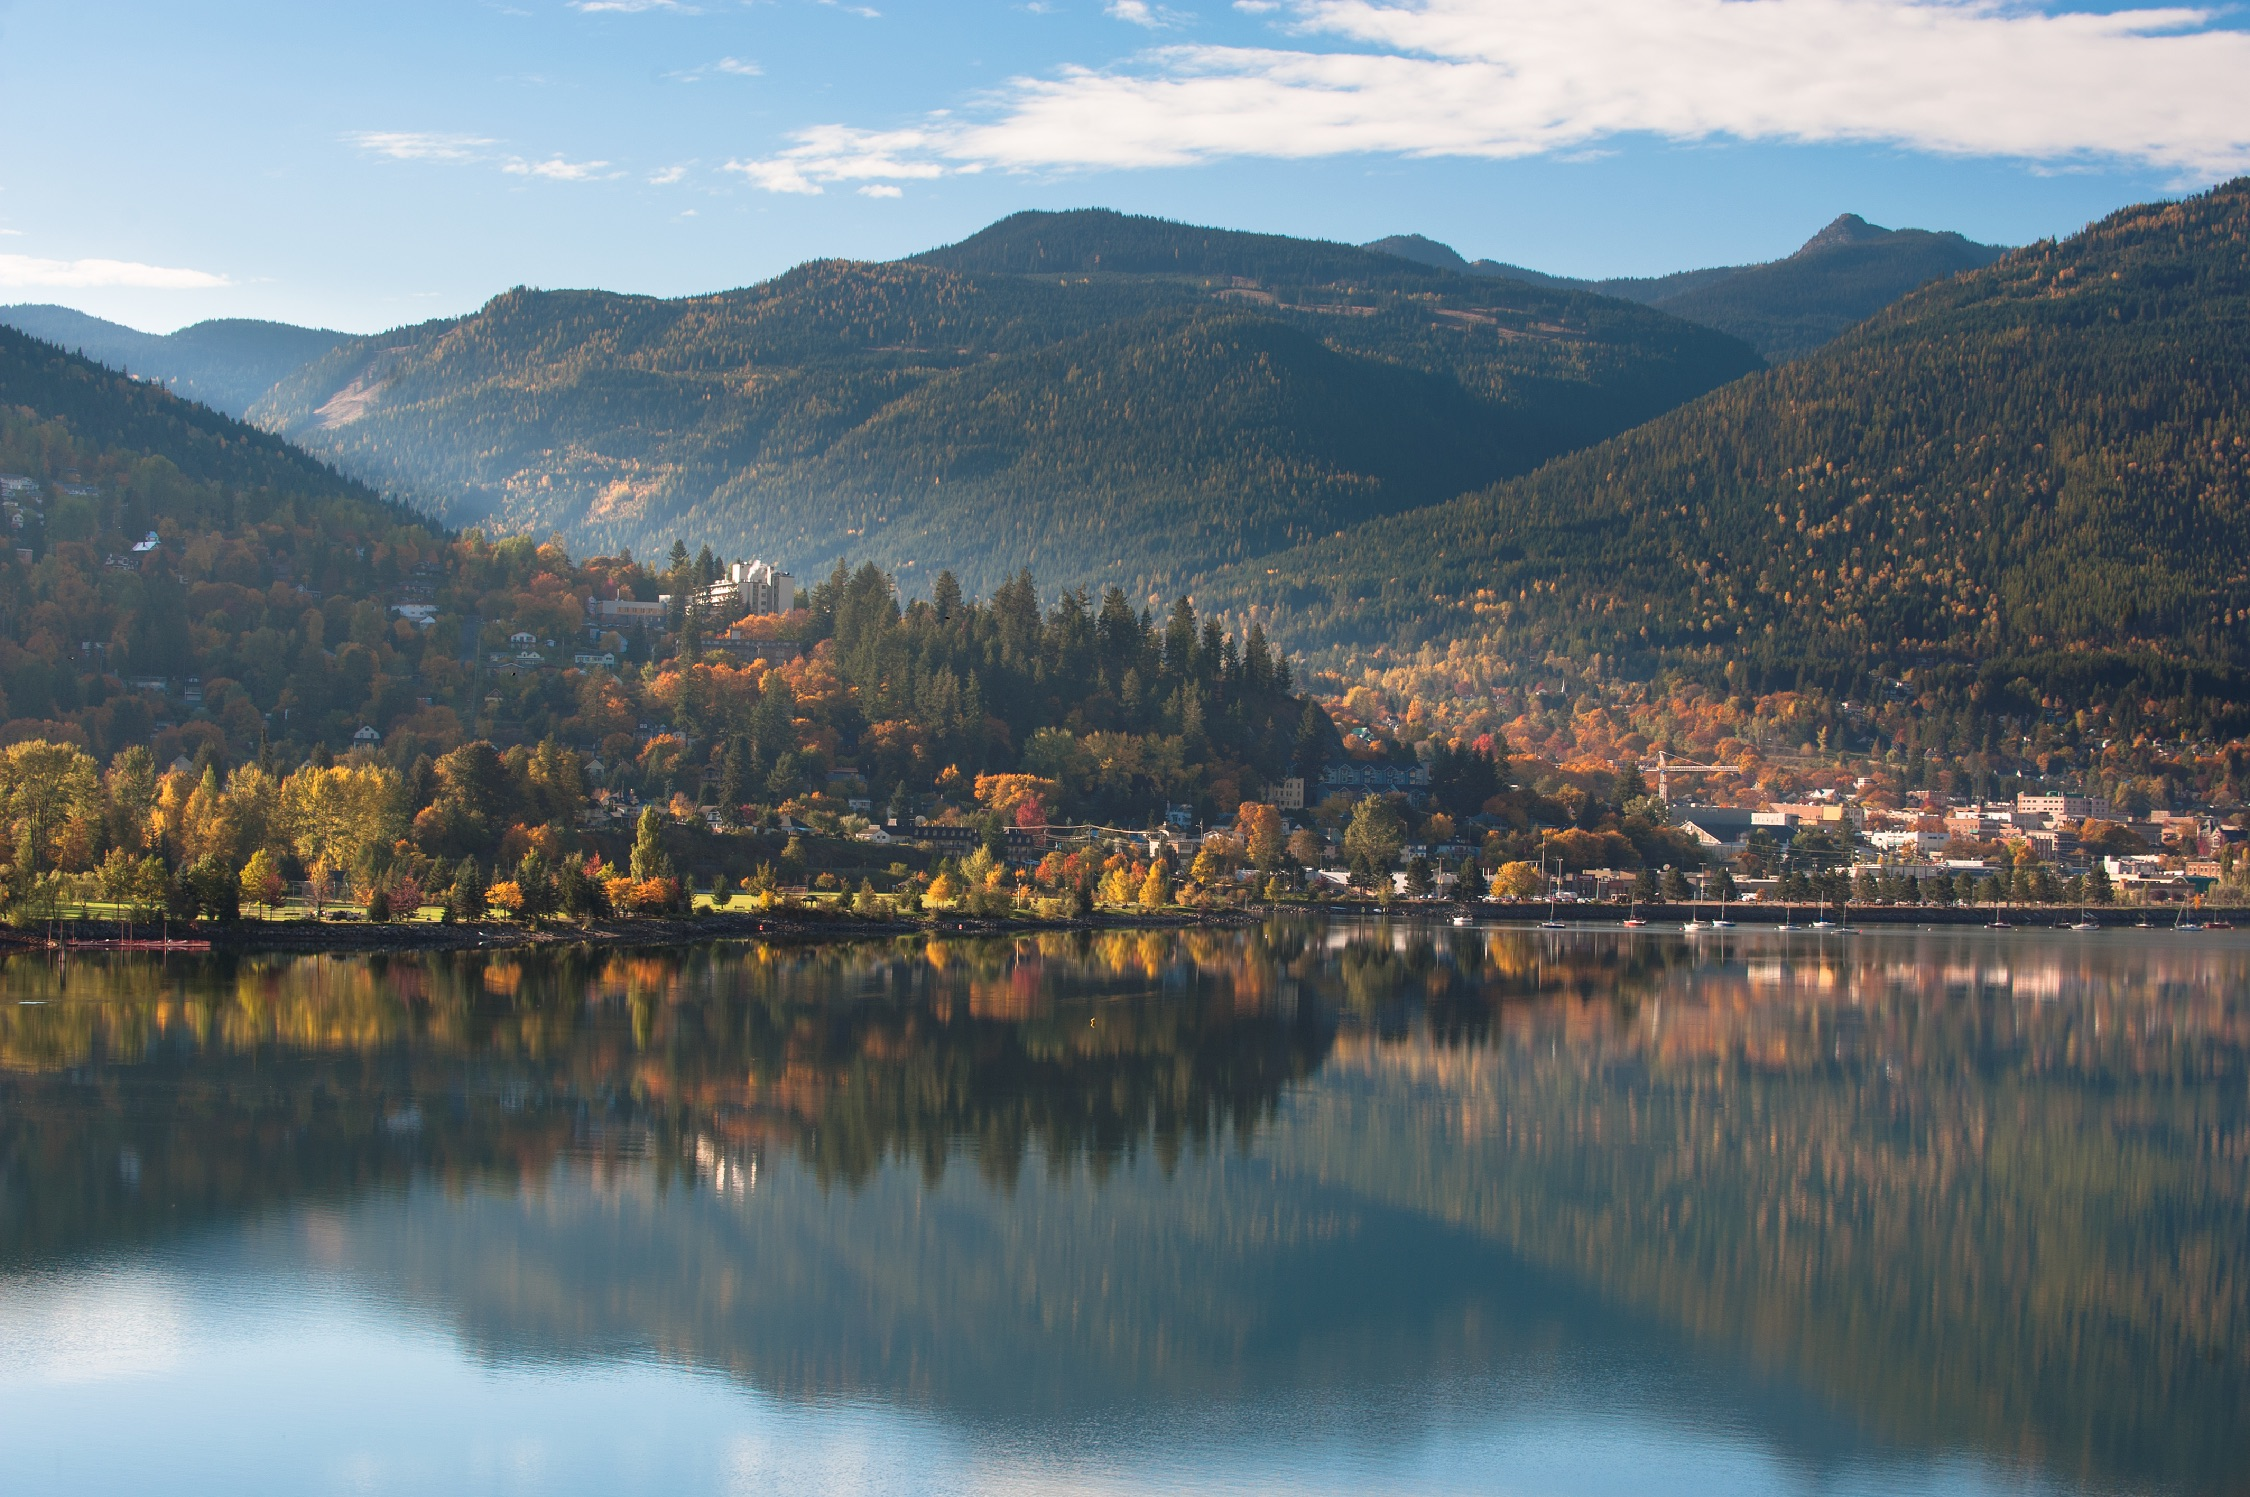 A scenic view of Nelson in the Kootenay Rockies